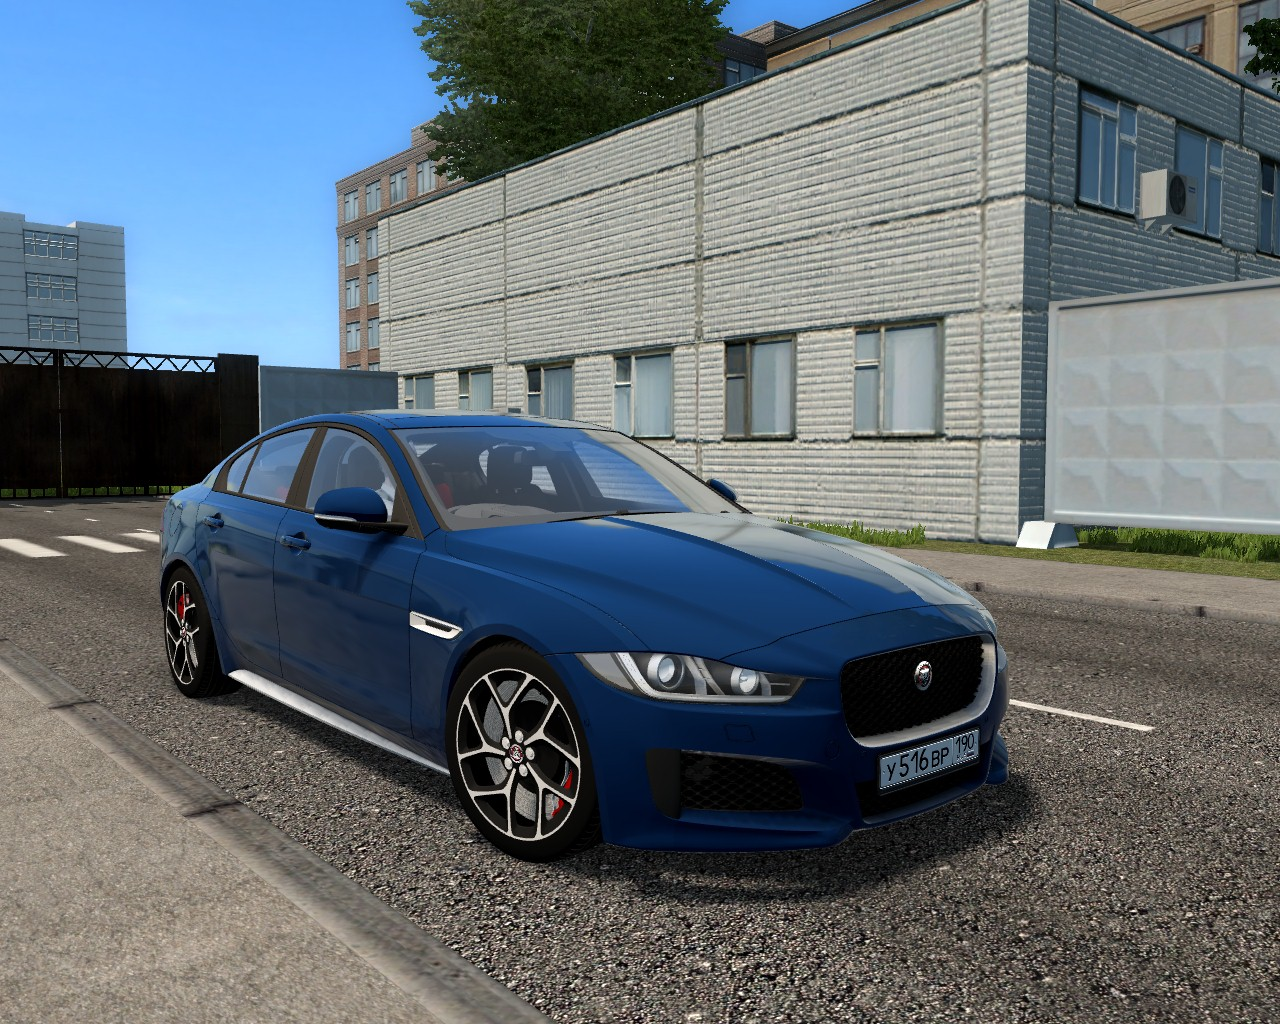 City Car Driving 1.5.8 - Jaguar XE 2015